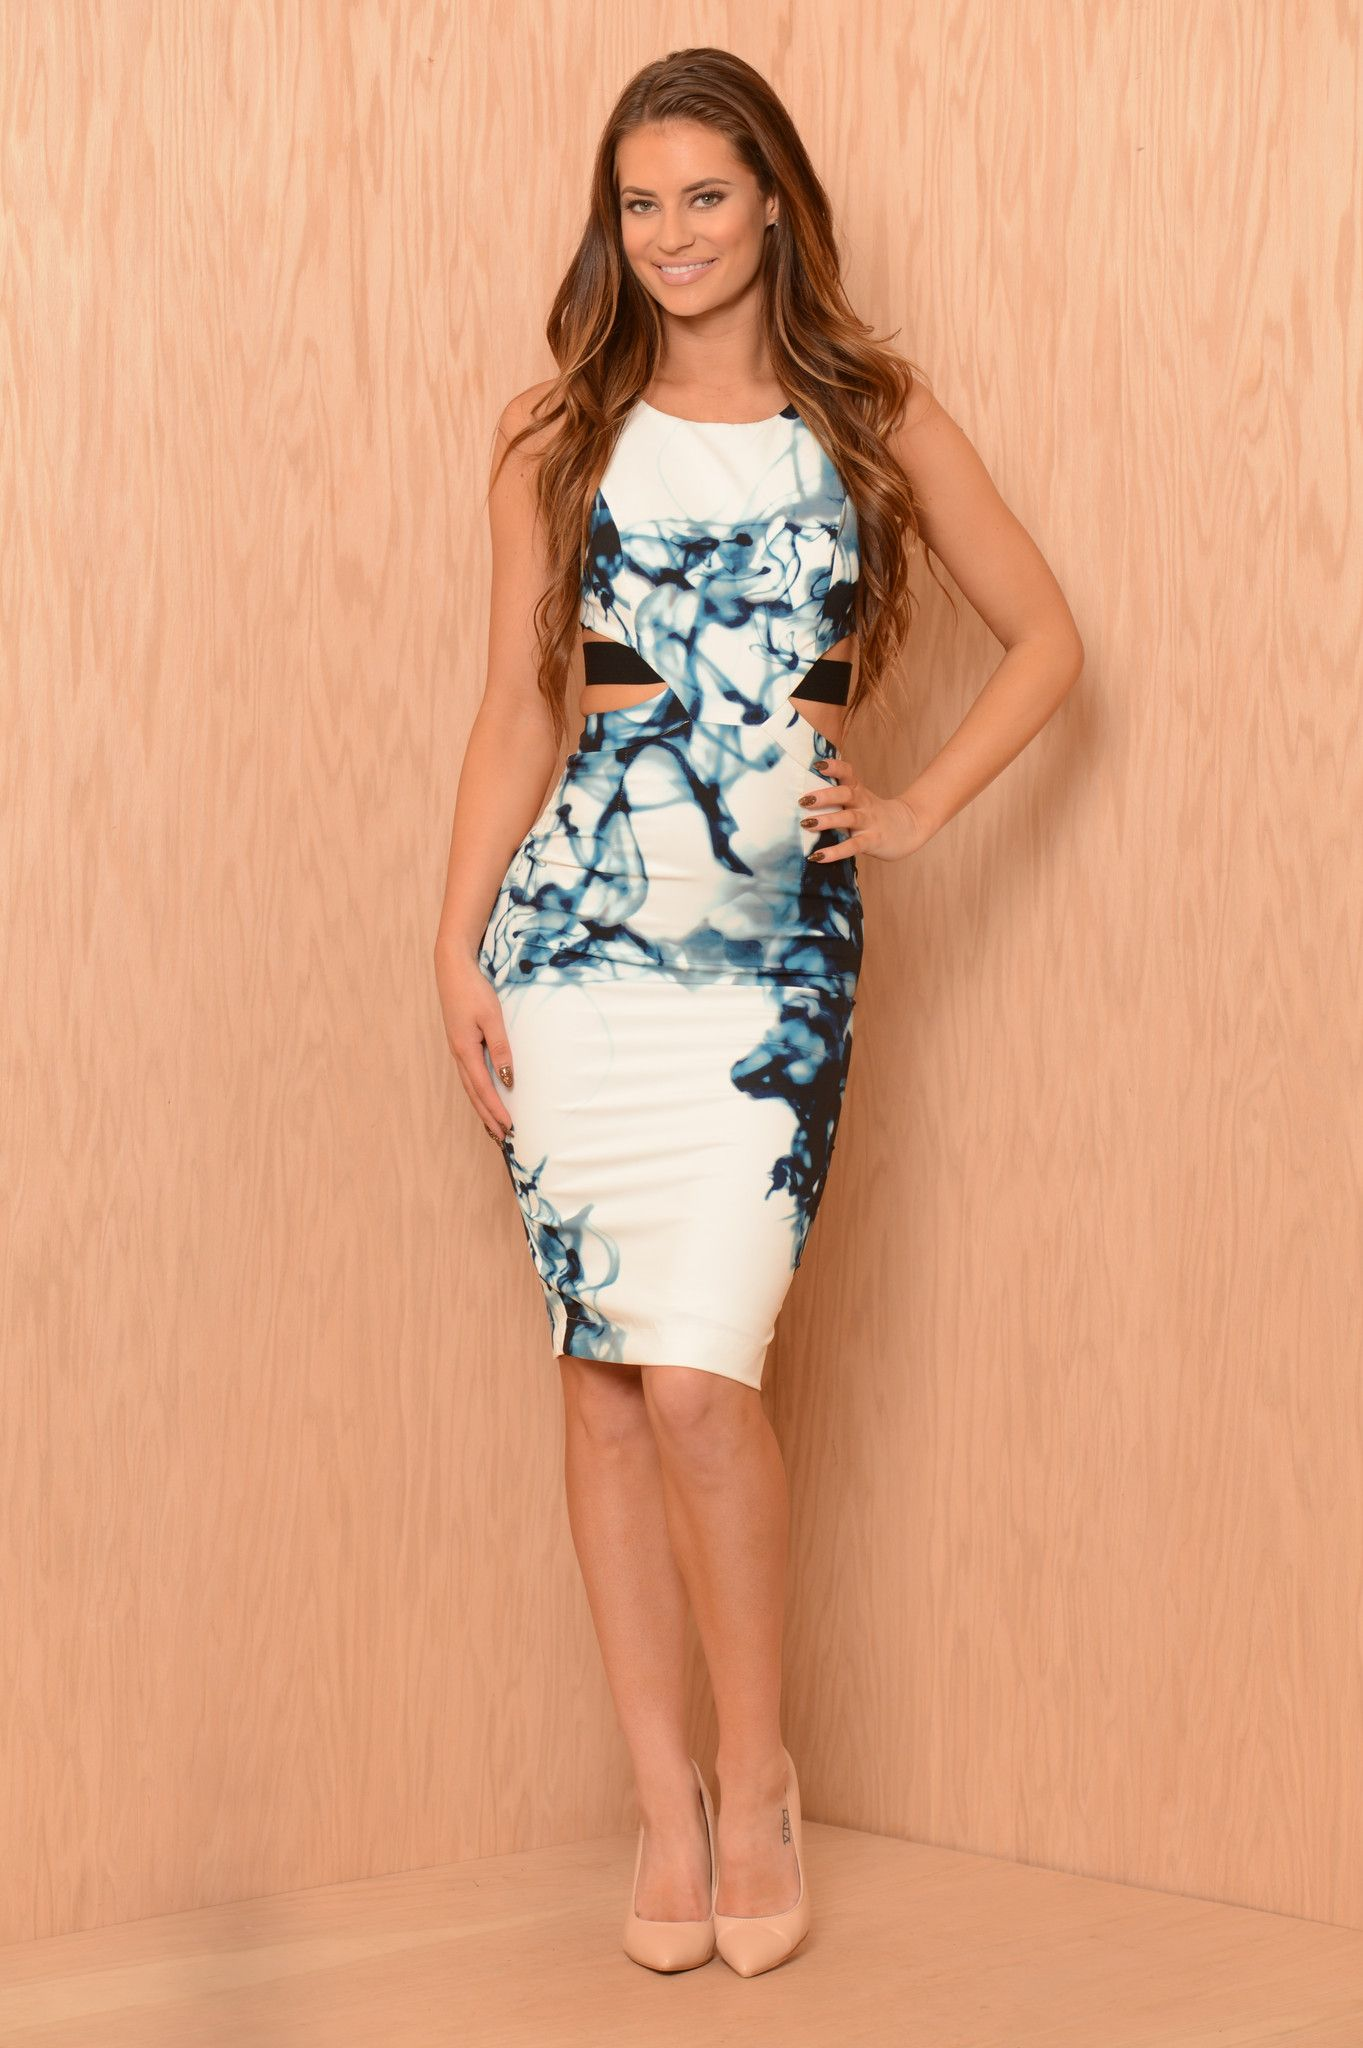 Miami Ink Dress | Products | Pinterest